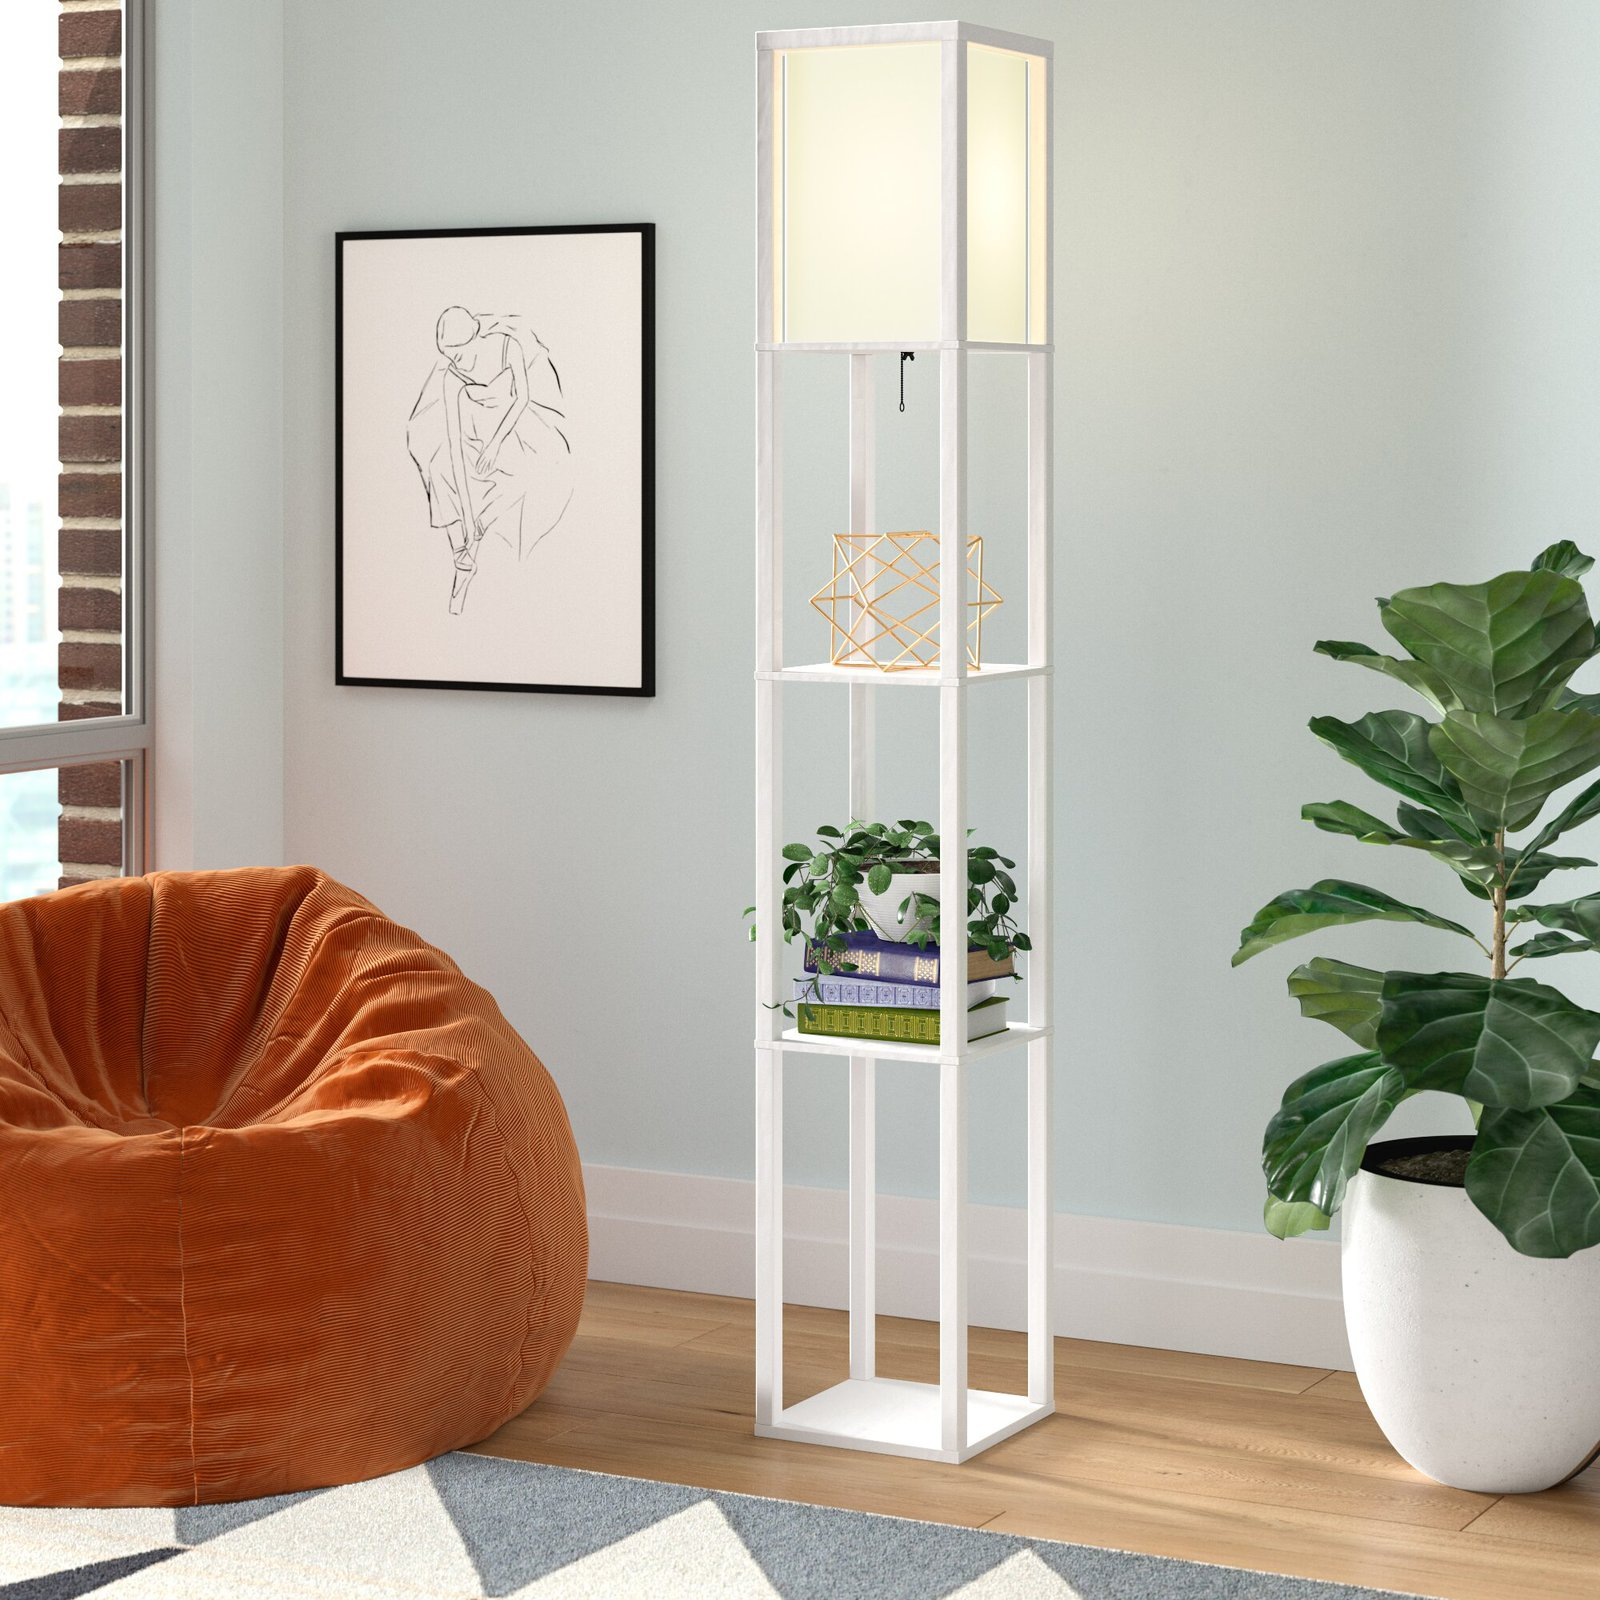 Choose a Floor Lamp With Built-in Shelving